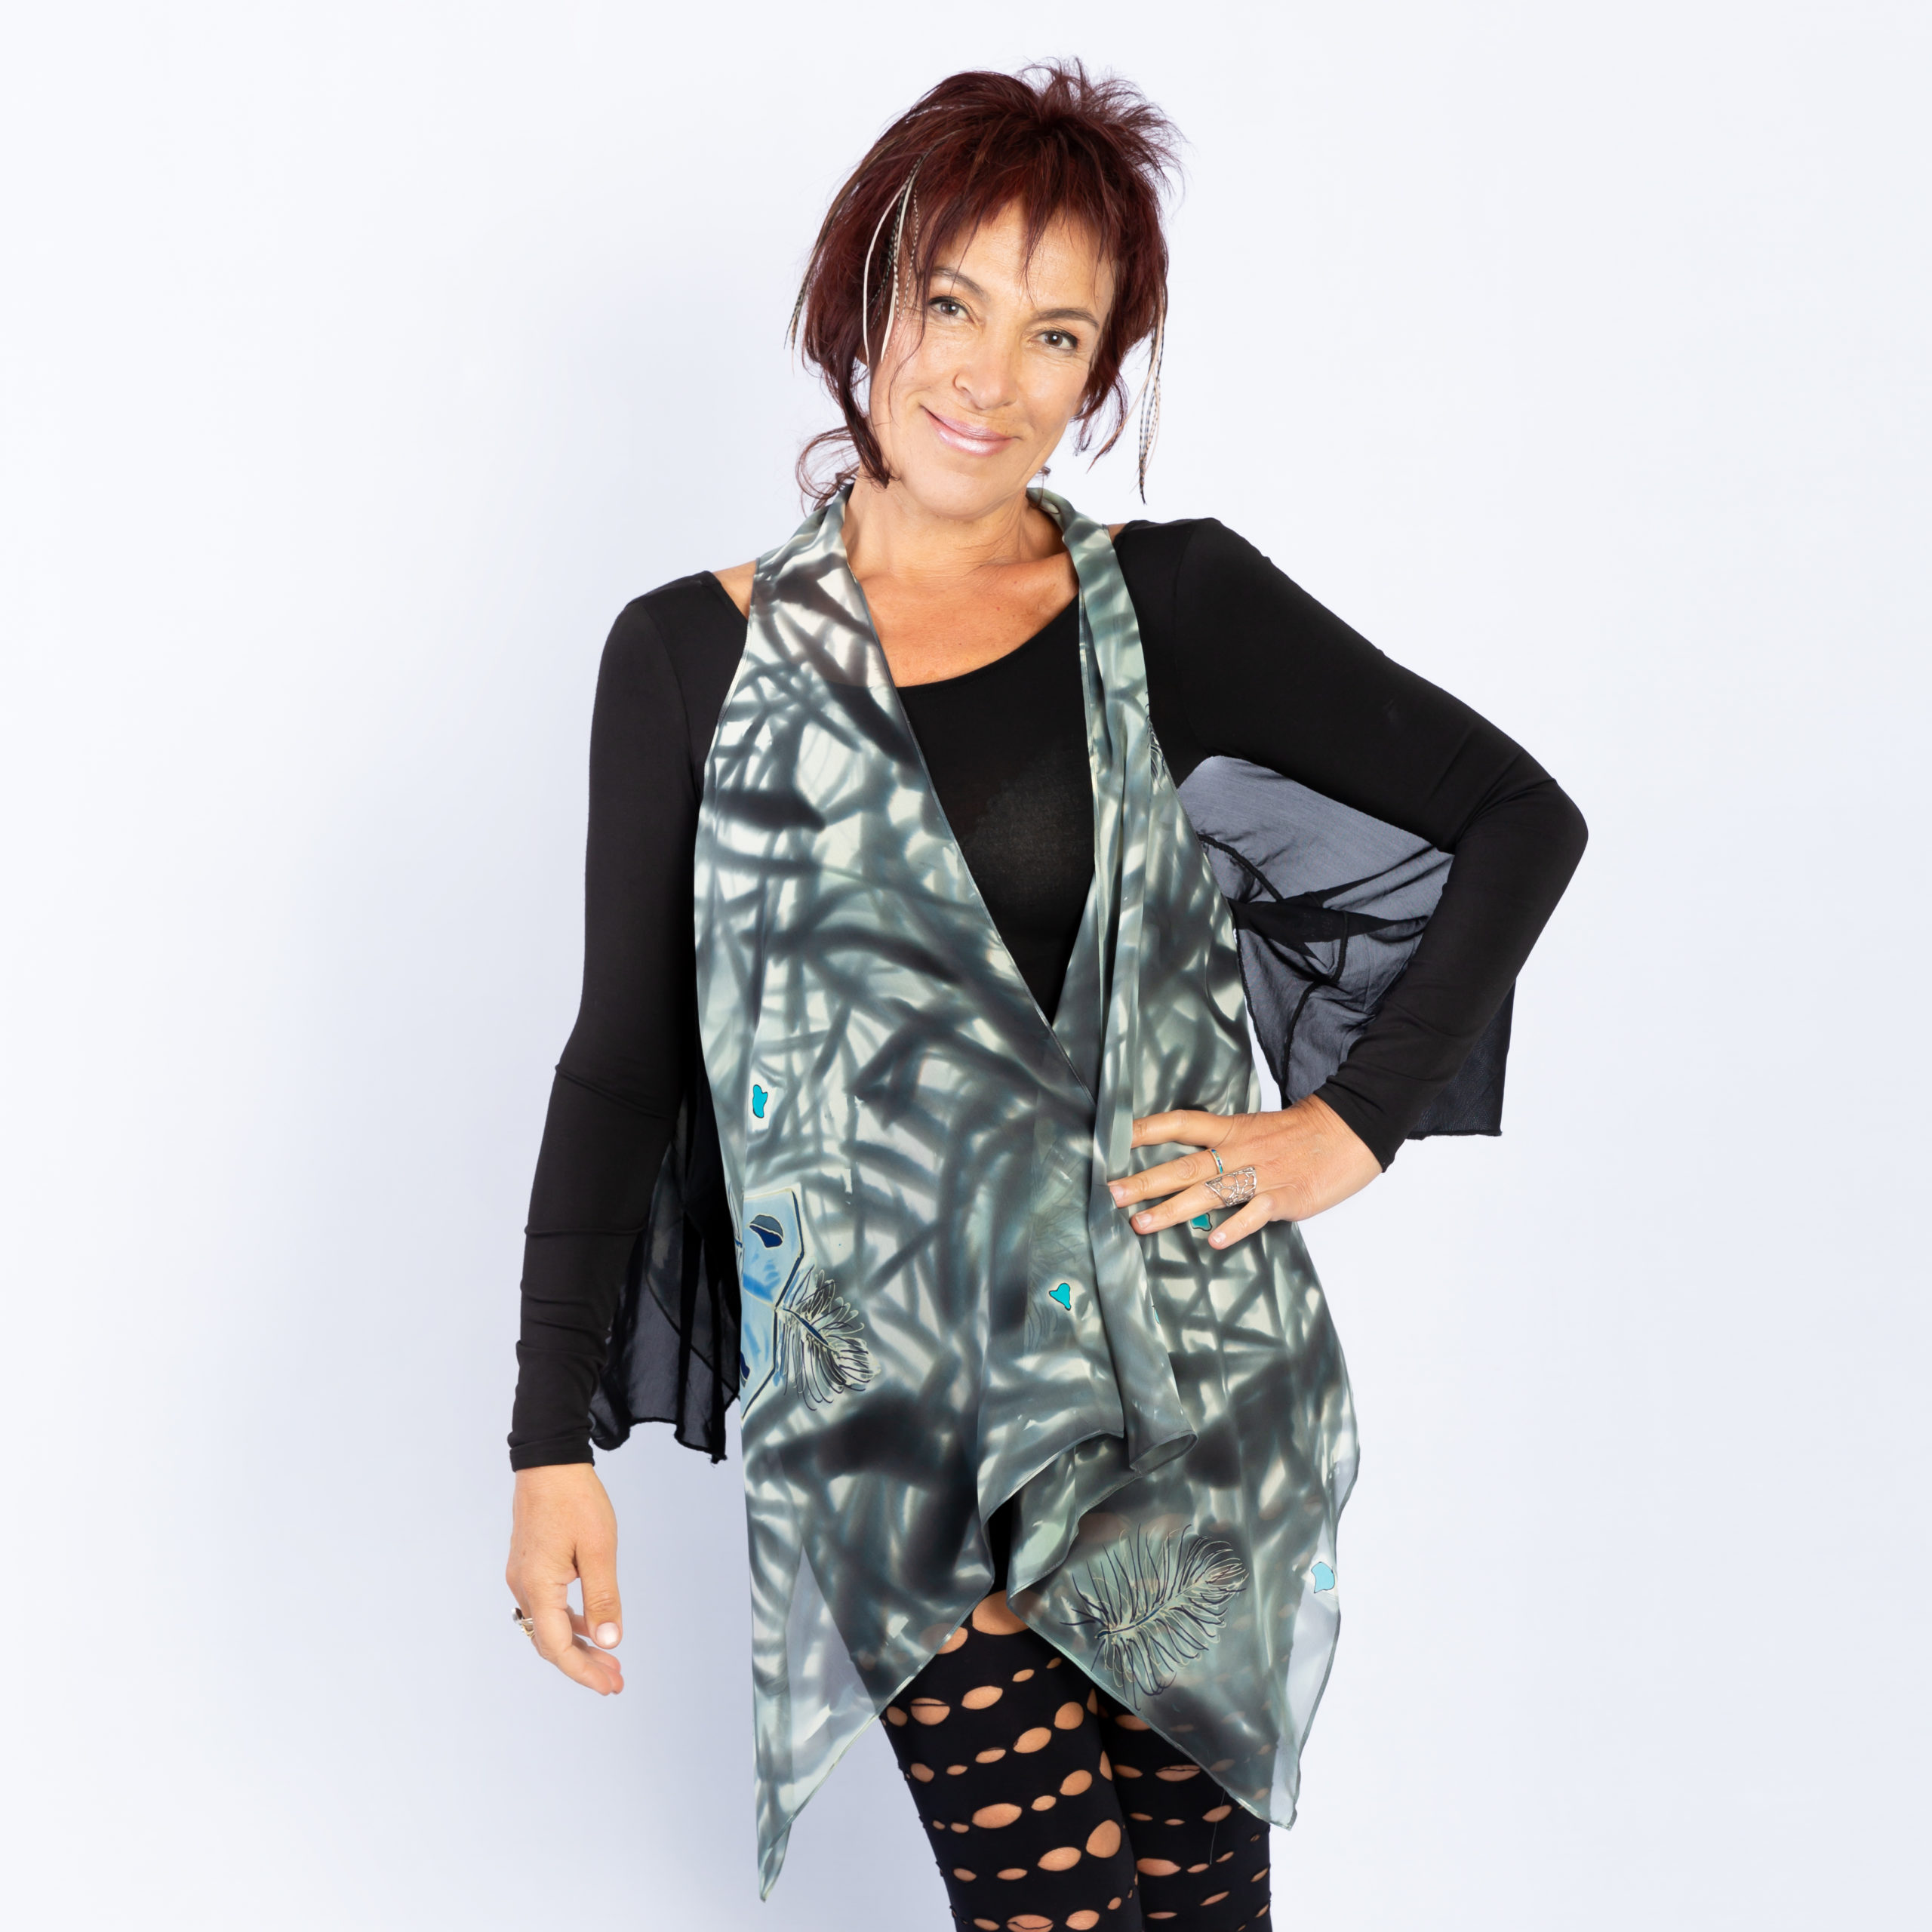 Mini vest with grey with feathers